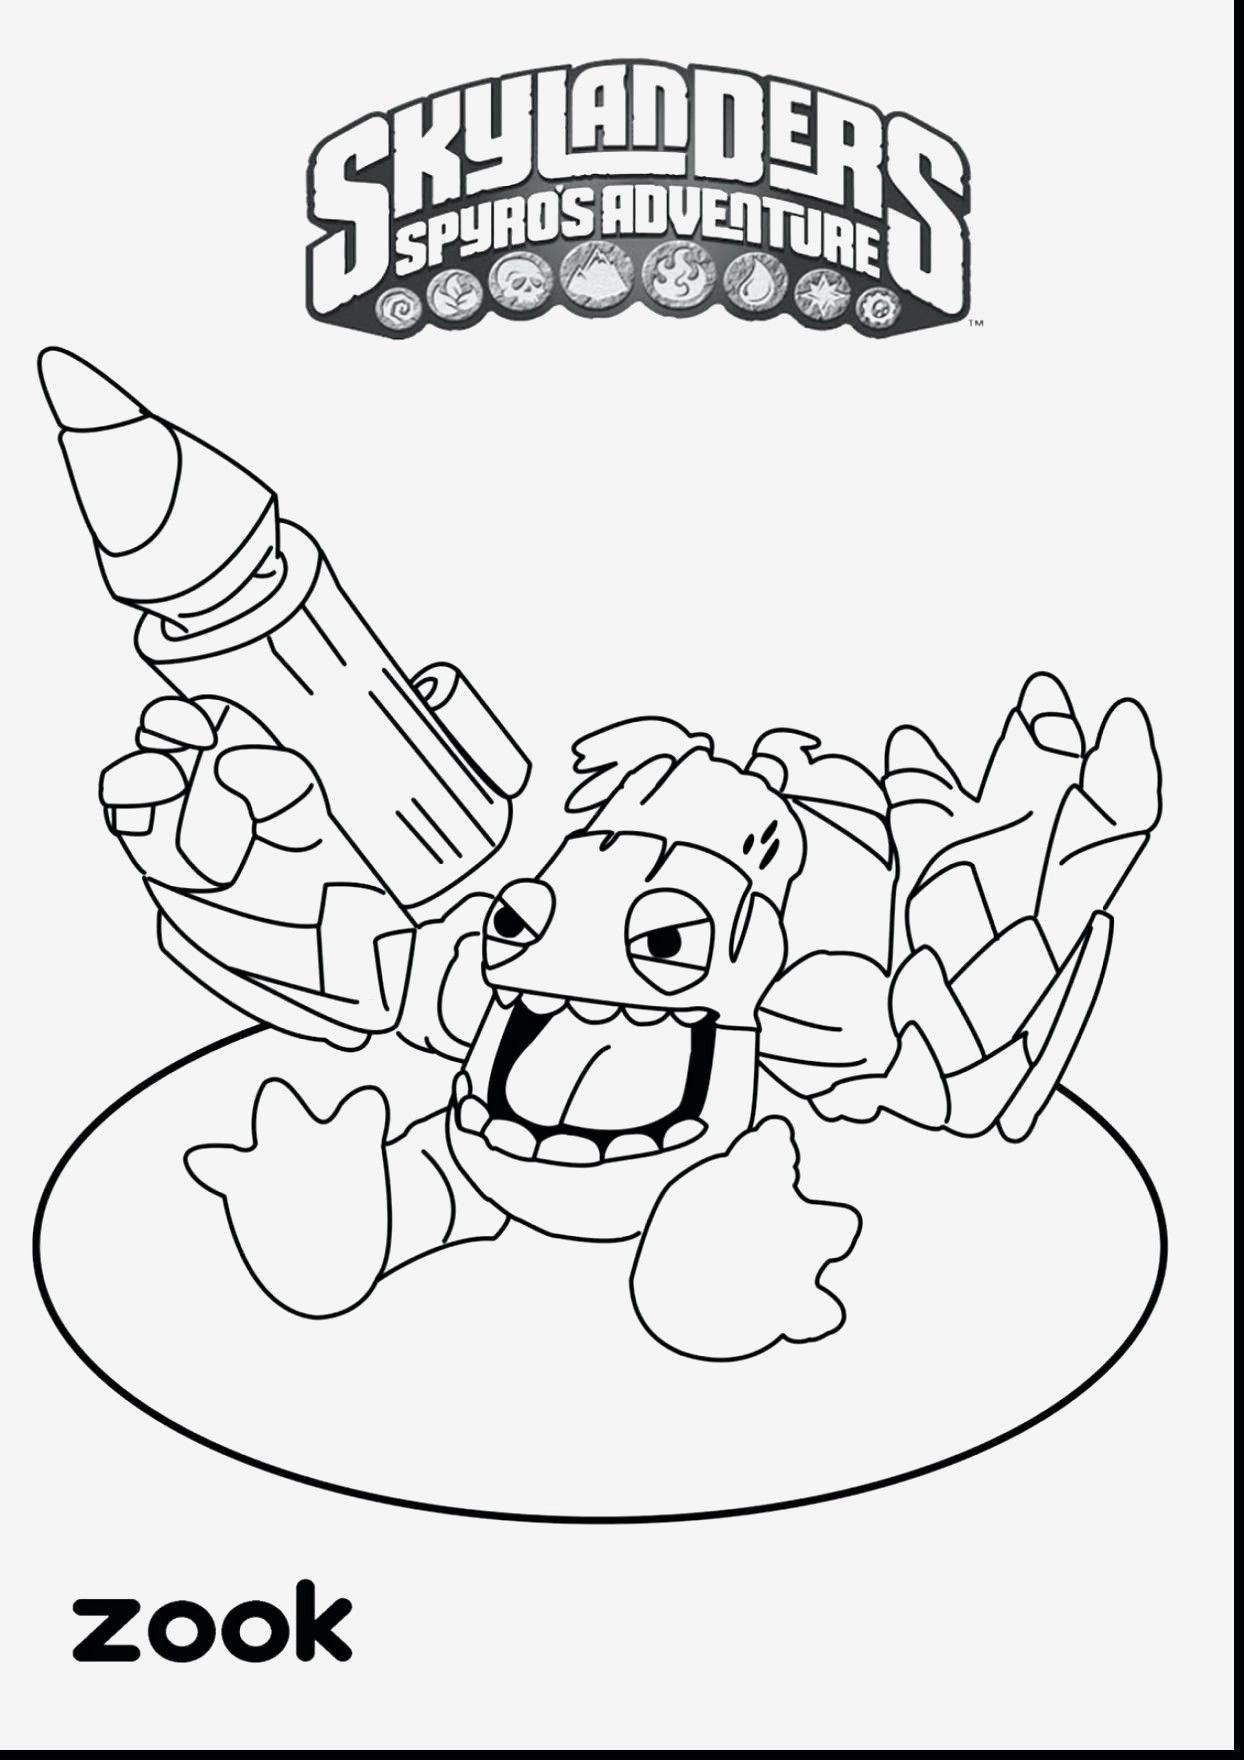 Turn Photo Into Coloring Page Luxury Inspirational Coloring Pages